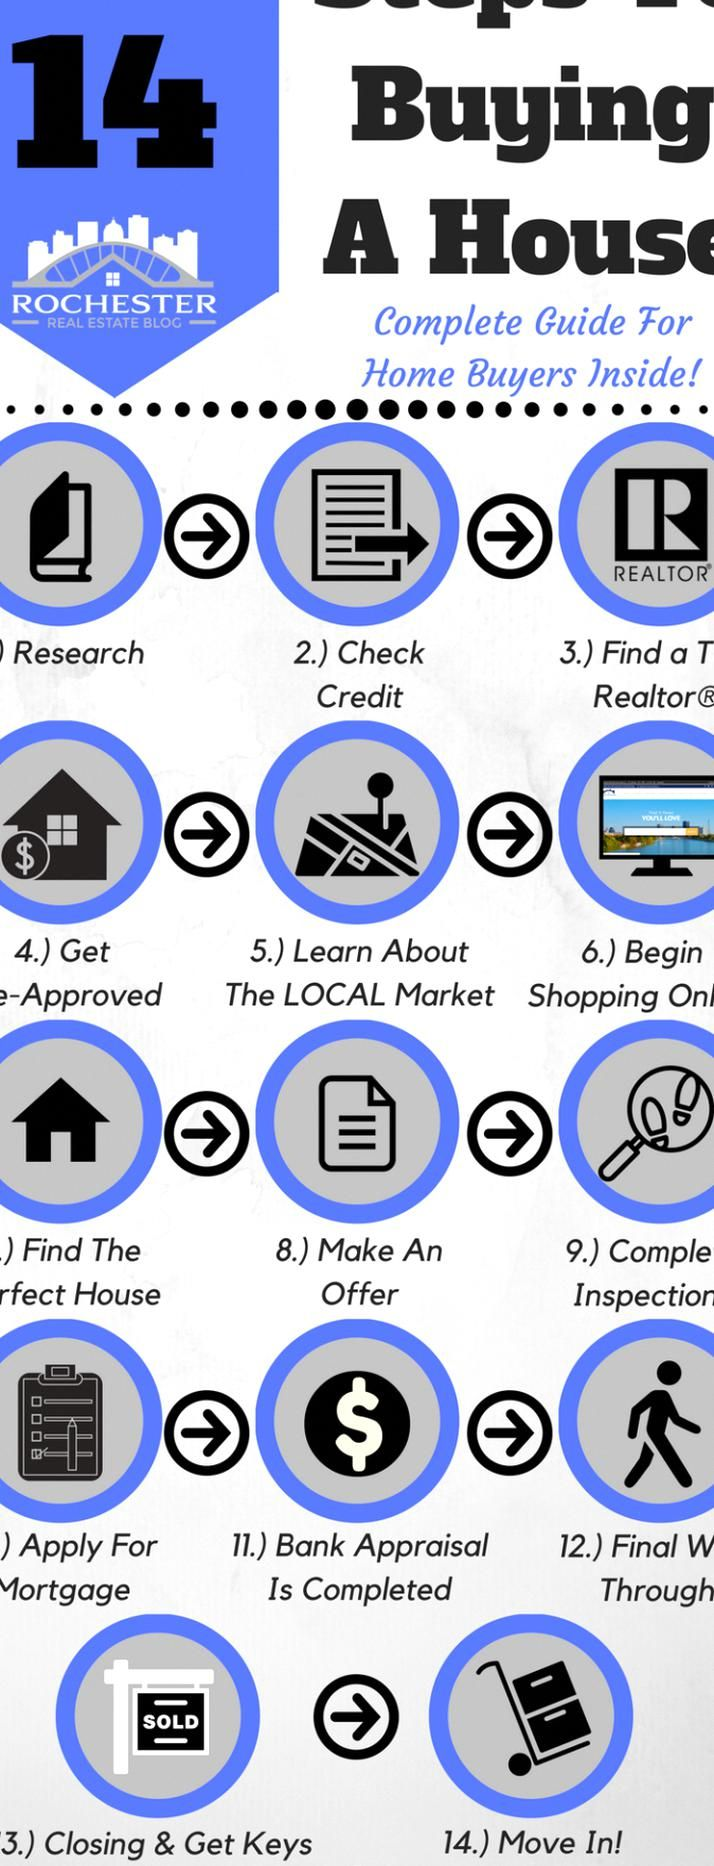 14 Steps To Buying A House A Complete Guide For Home Buyers Homebuyingtips In 2020 Buying First Home Home Buying Process Home Buying